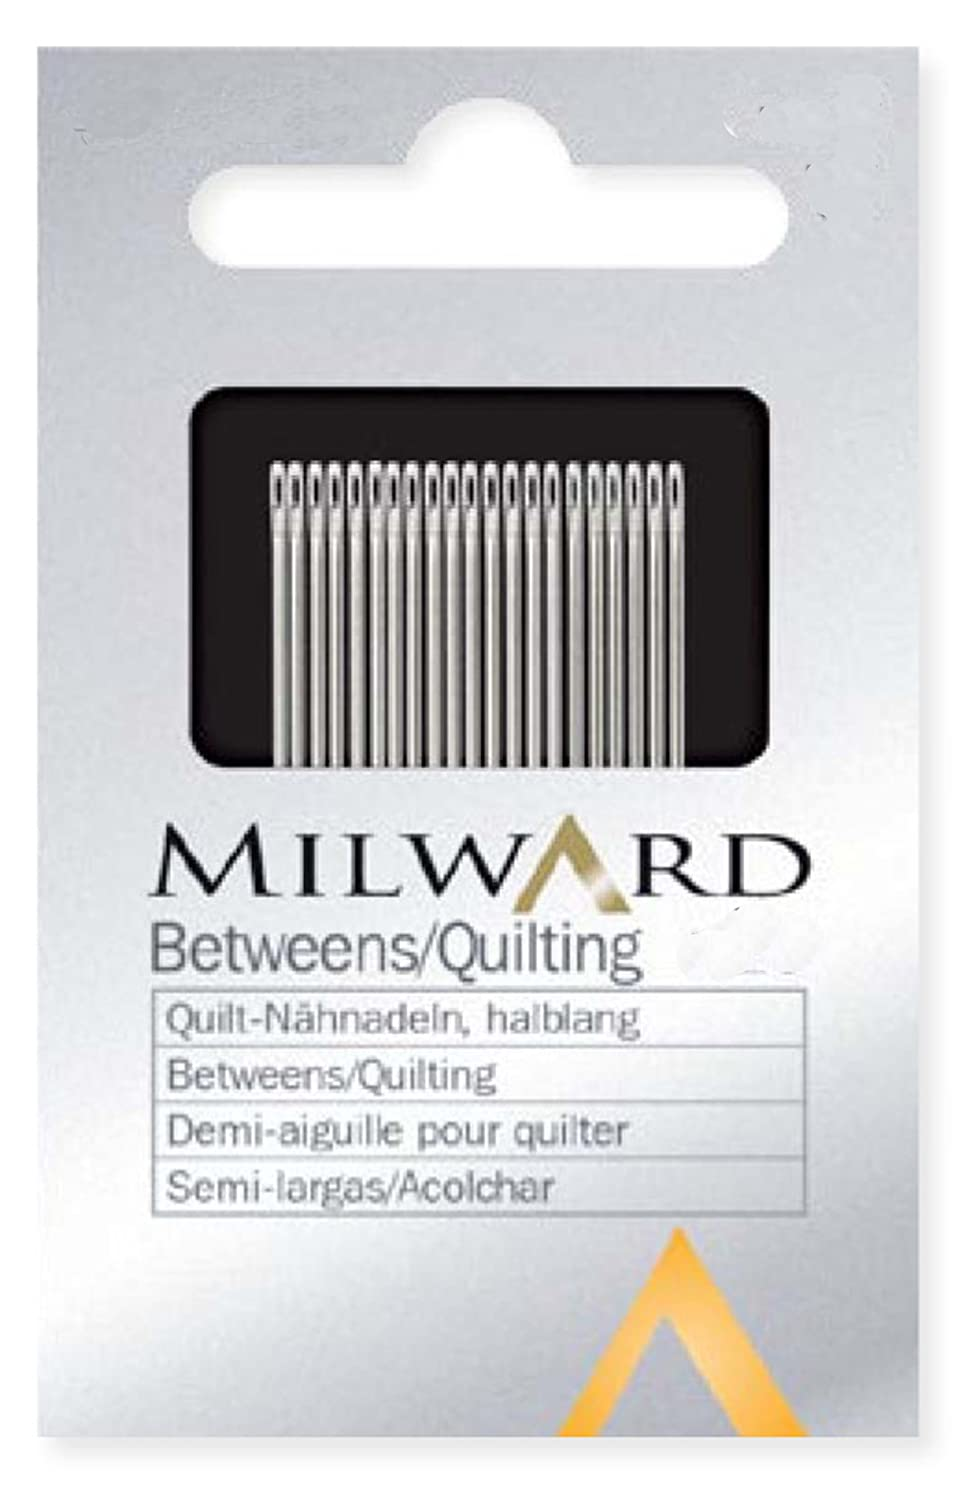 betweens quilting needles hand sewing (0,53x22,5mm) Milward